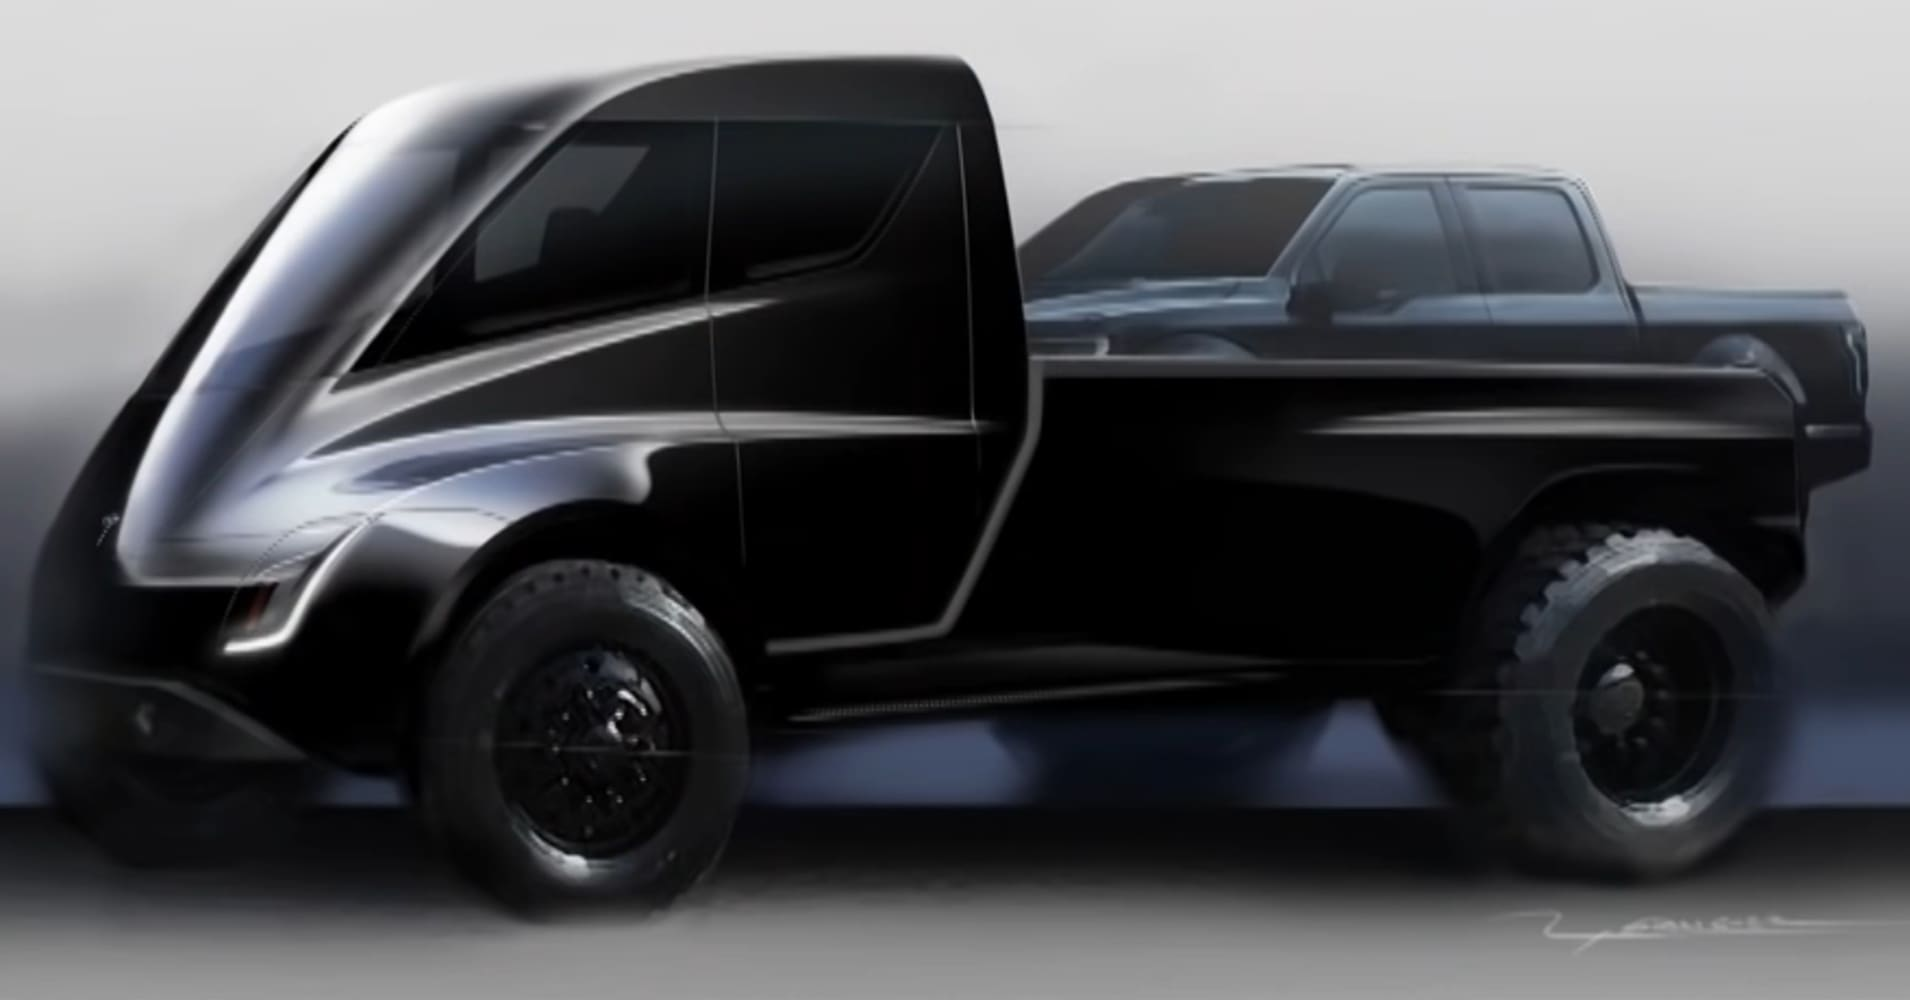 Elon Musk Tweets About Tesla Pickup Truck Prototype For 2019